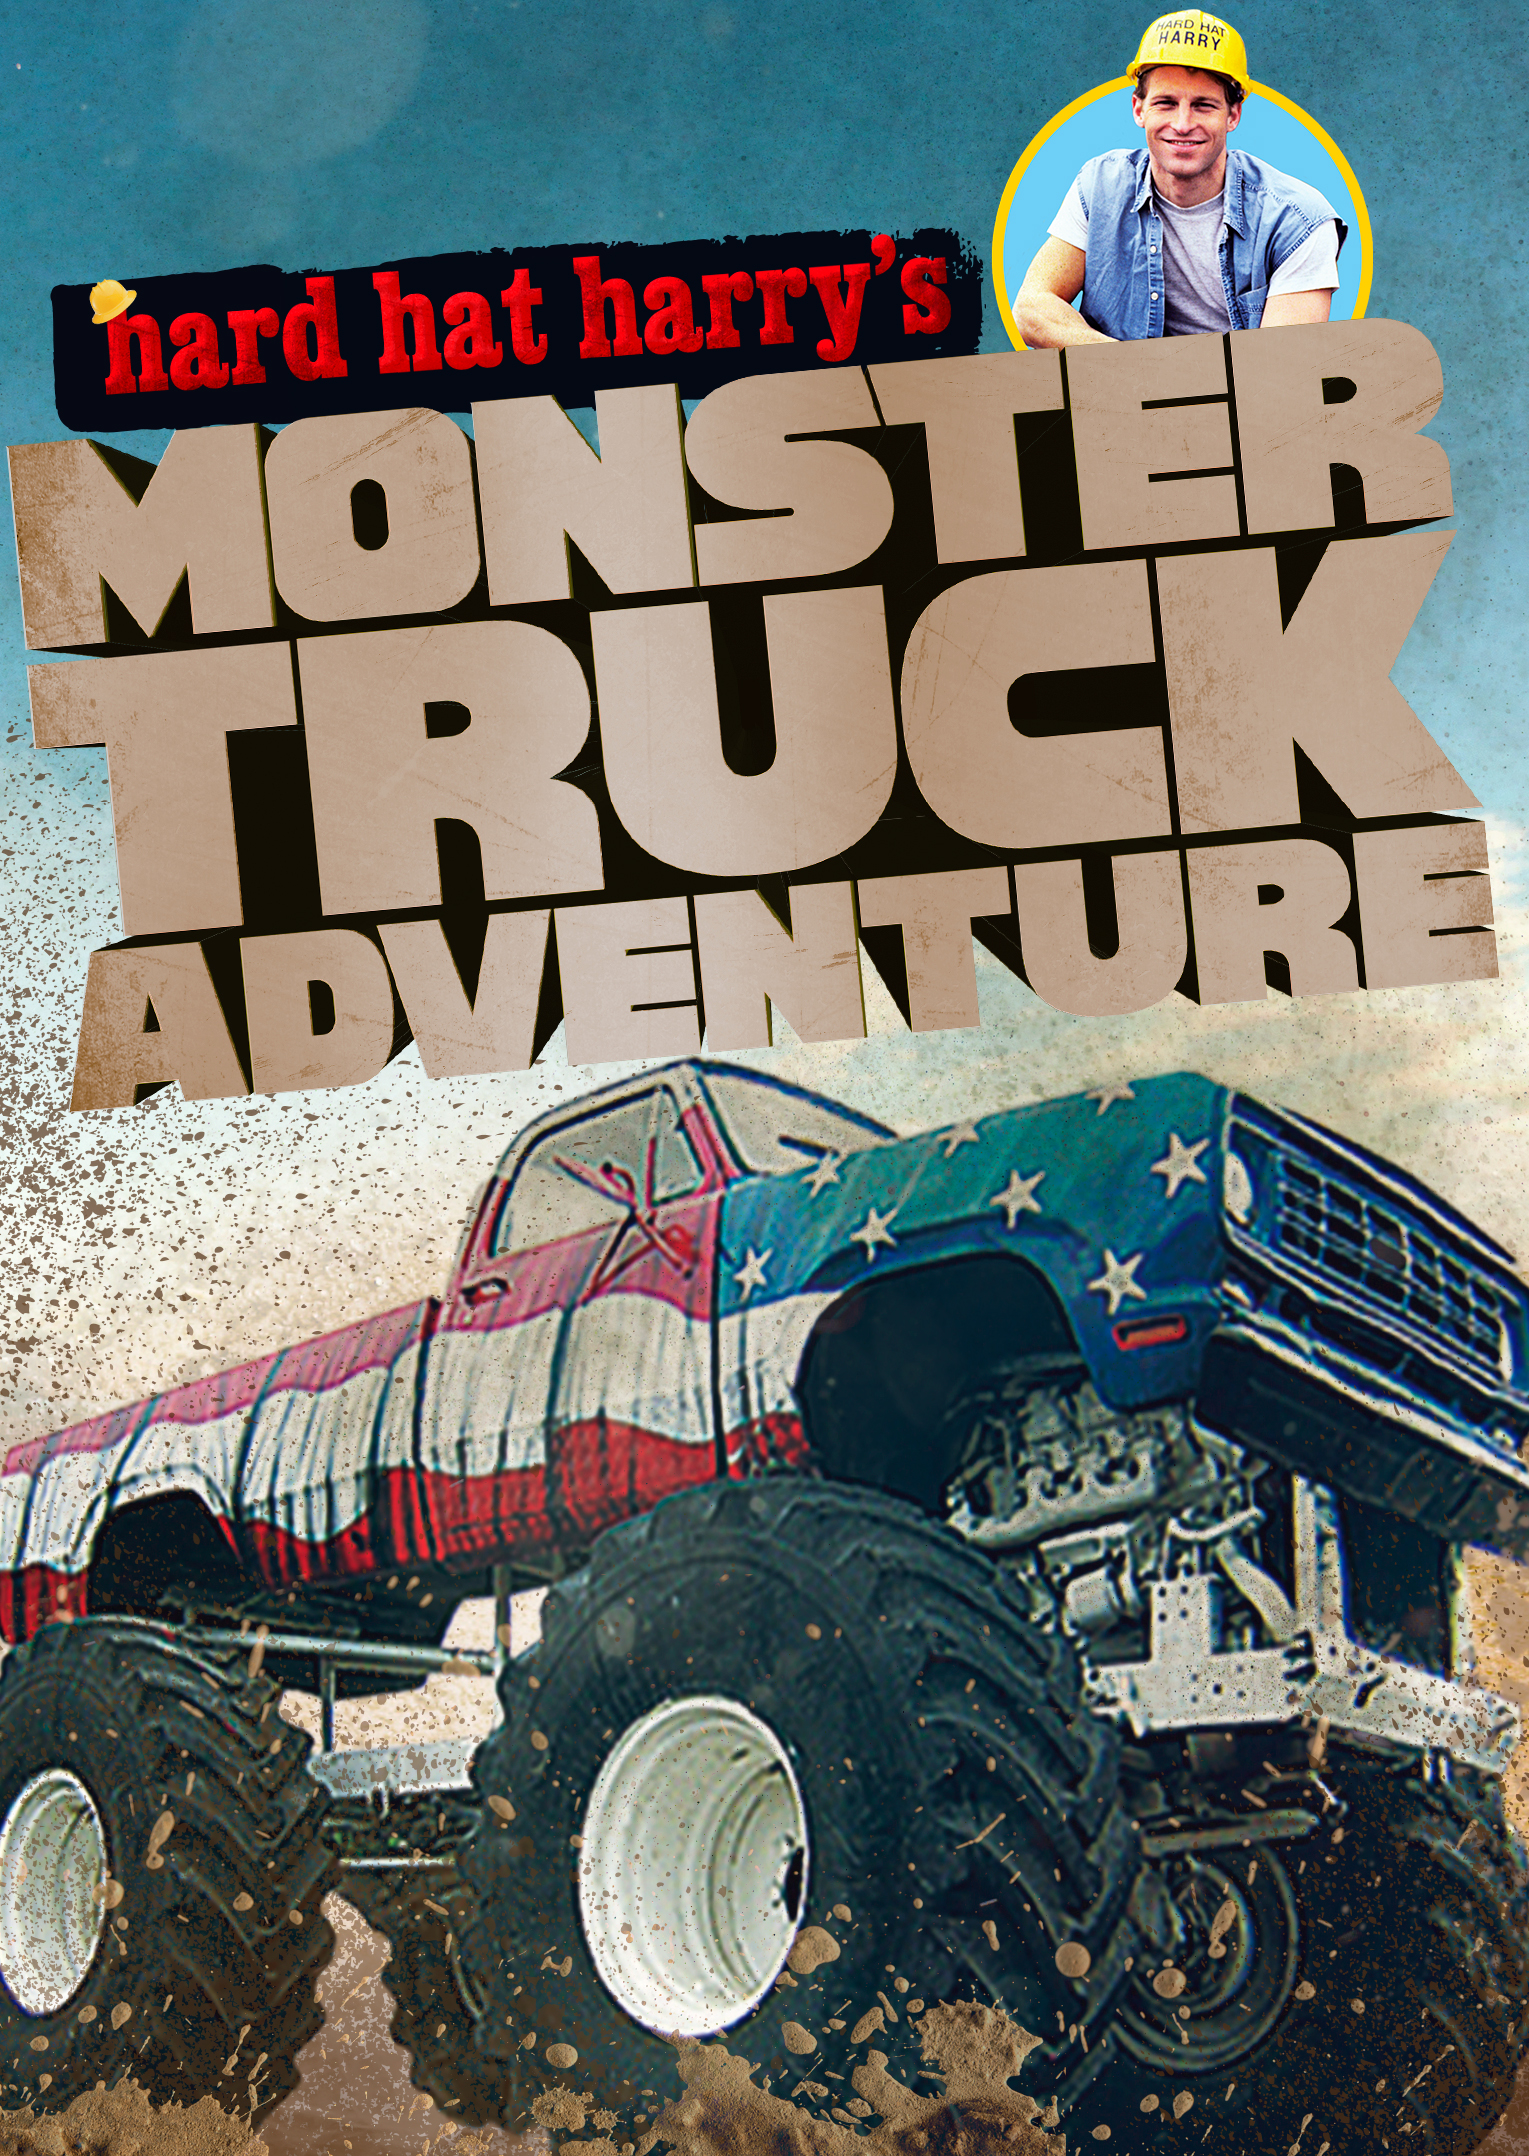 Hard Hat Harry Monster Truck Adventures  JSD  Cinedigm